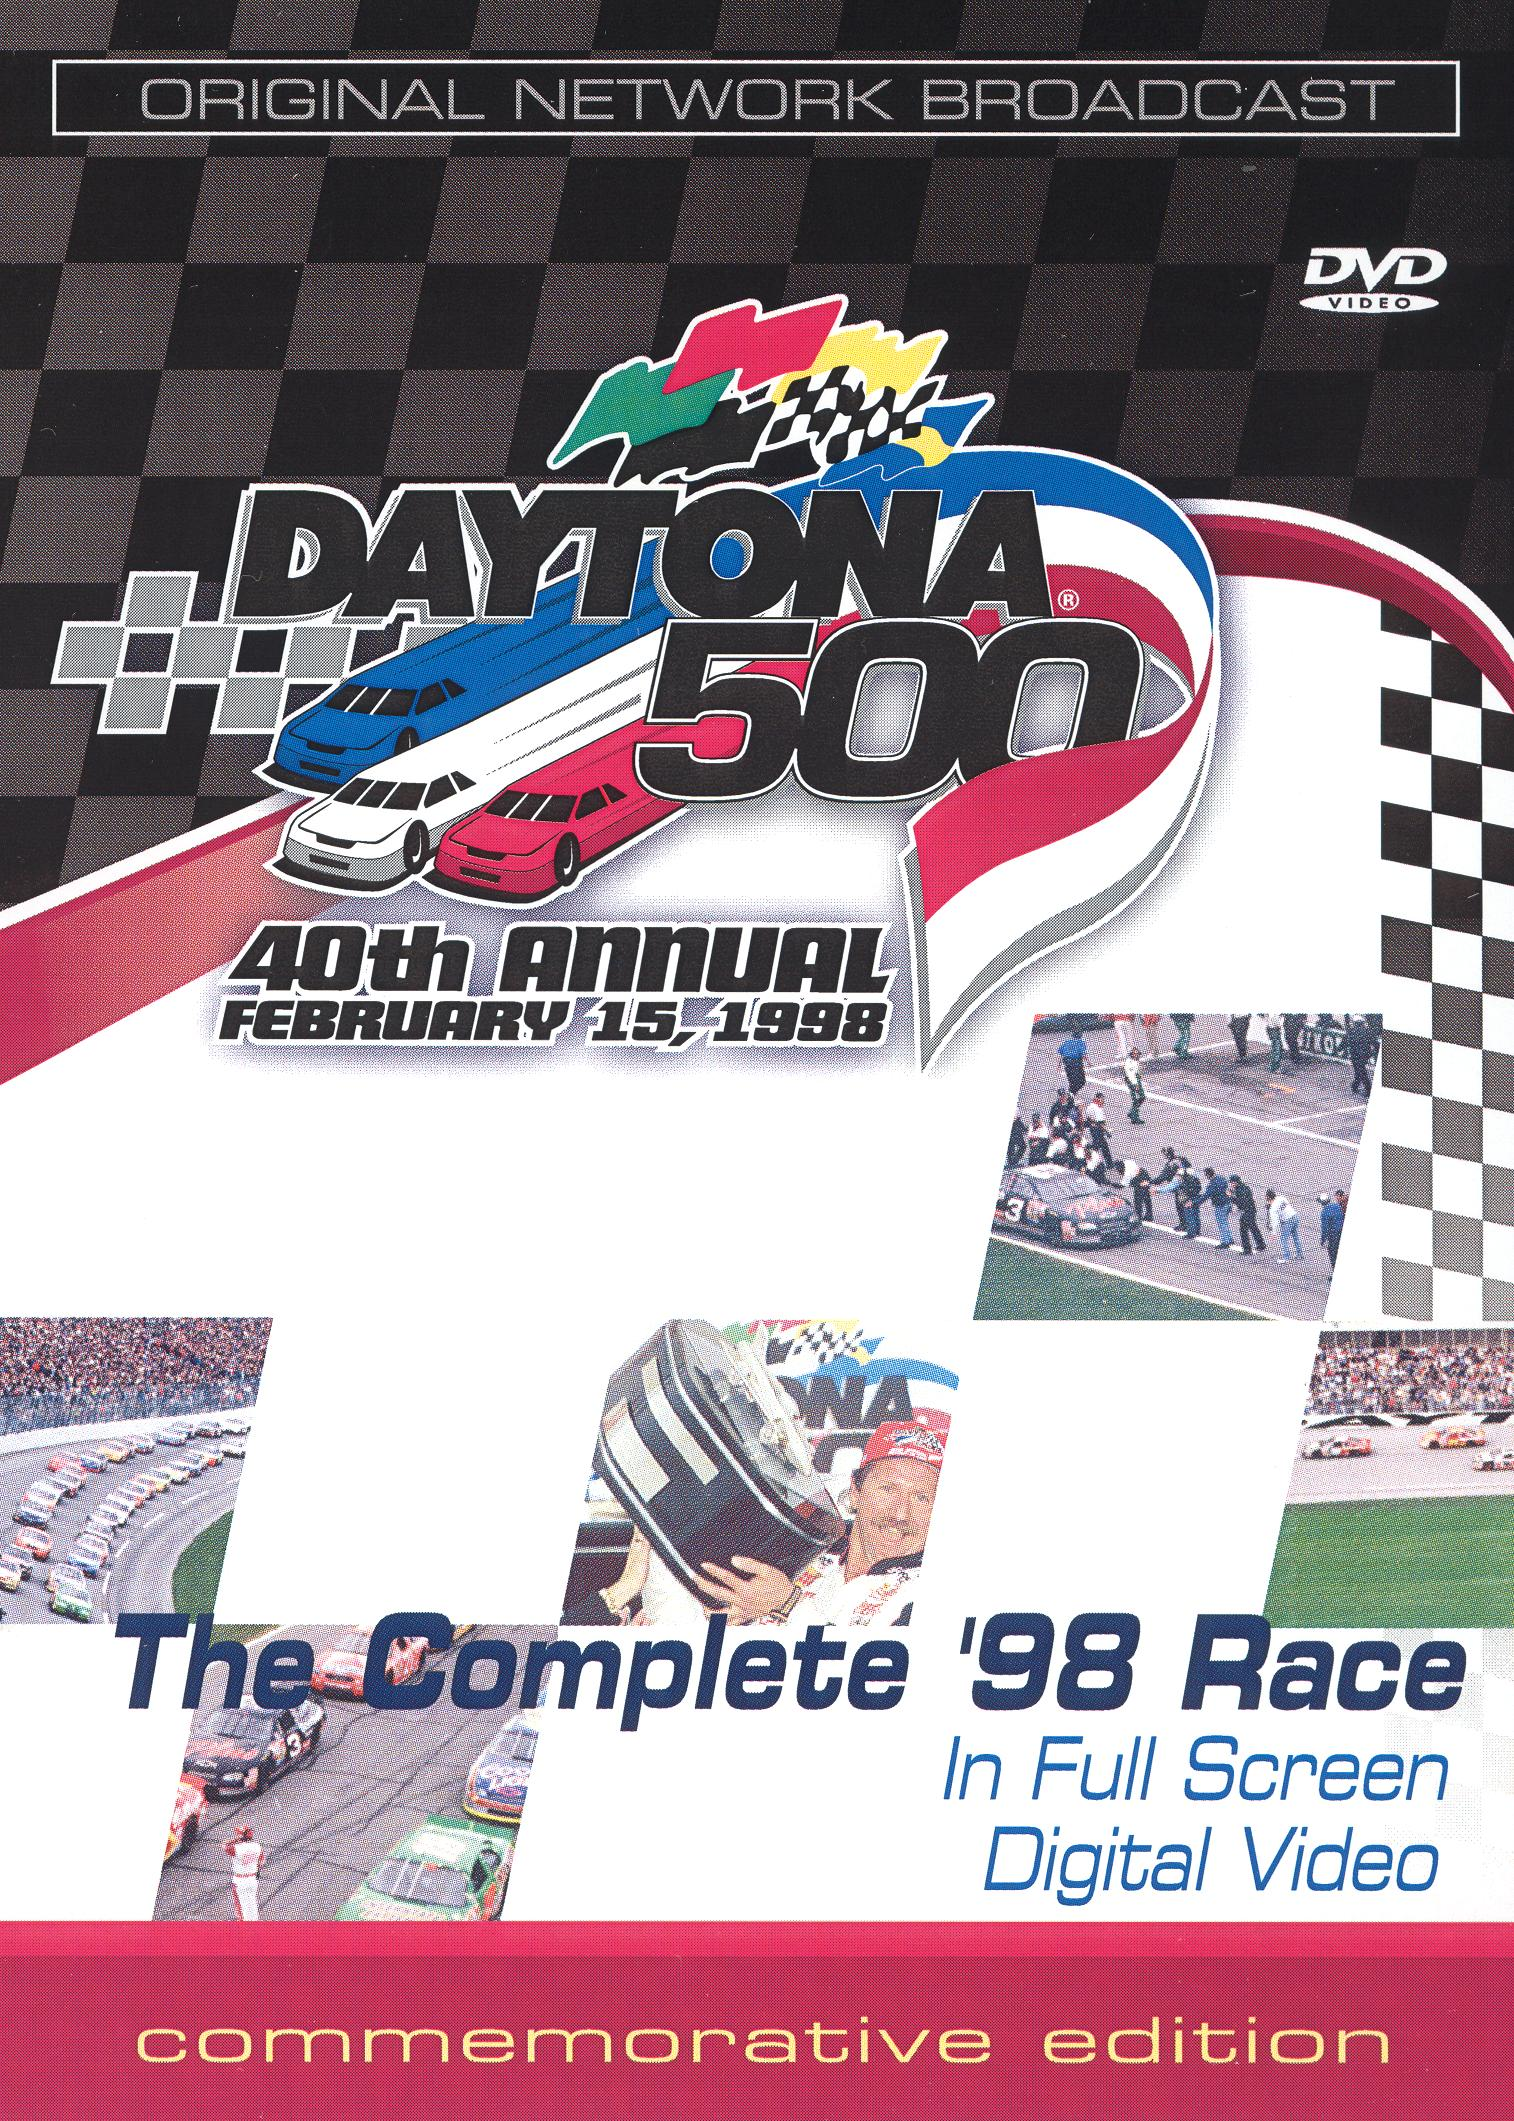 Daytona 500: 40th Annual - The Complete '98 Race